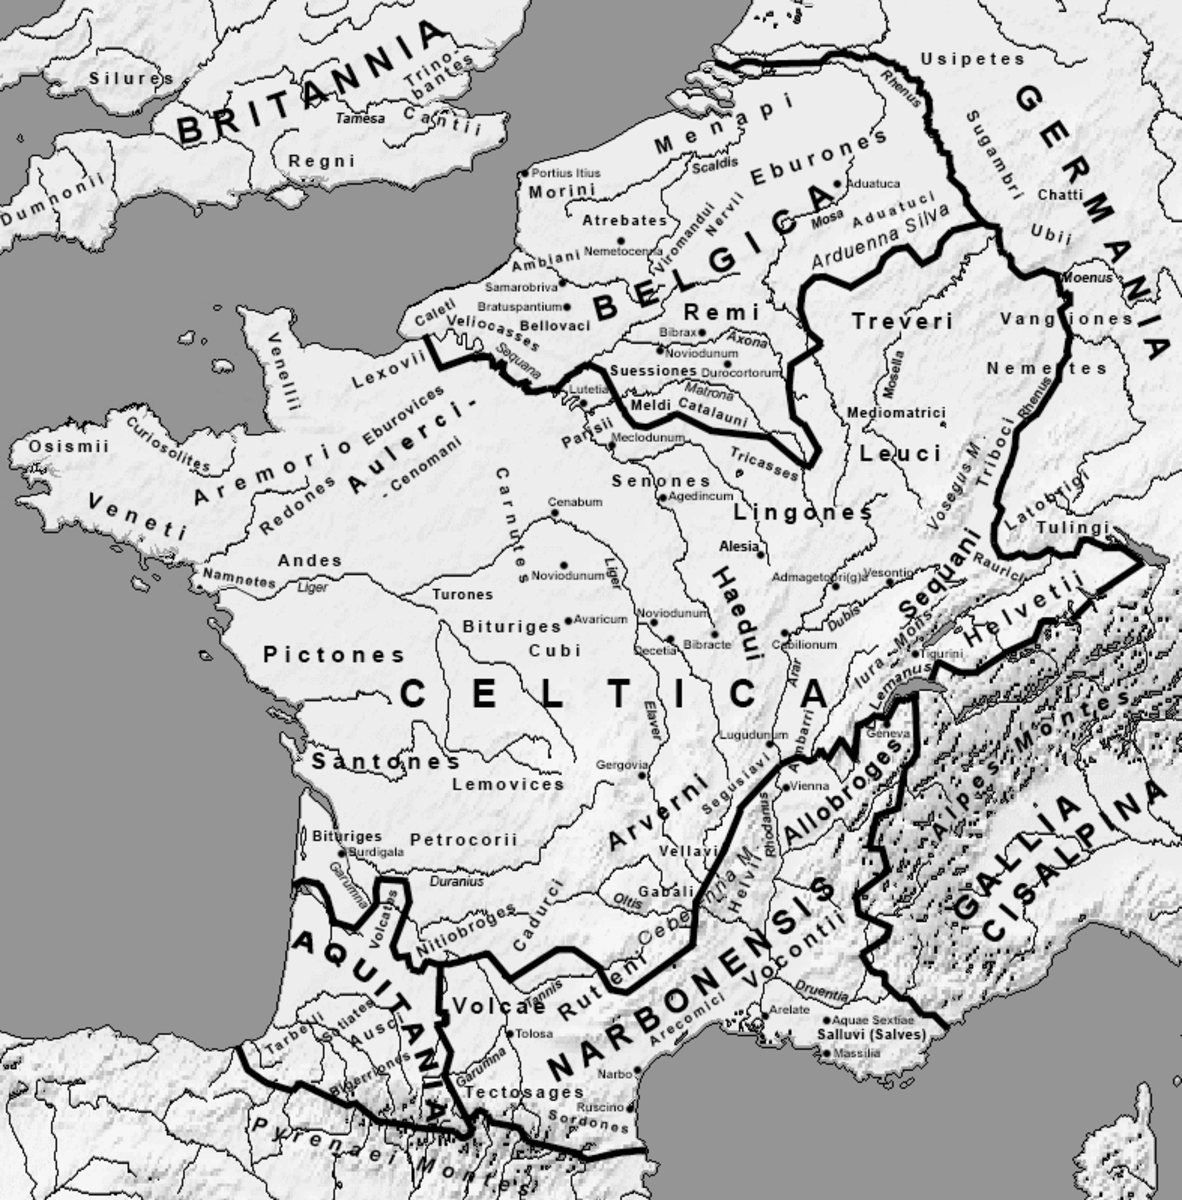 Roman map of Celtic territories in mainland Europe, circa 54 AD.